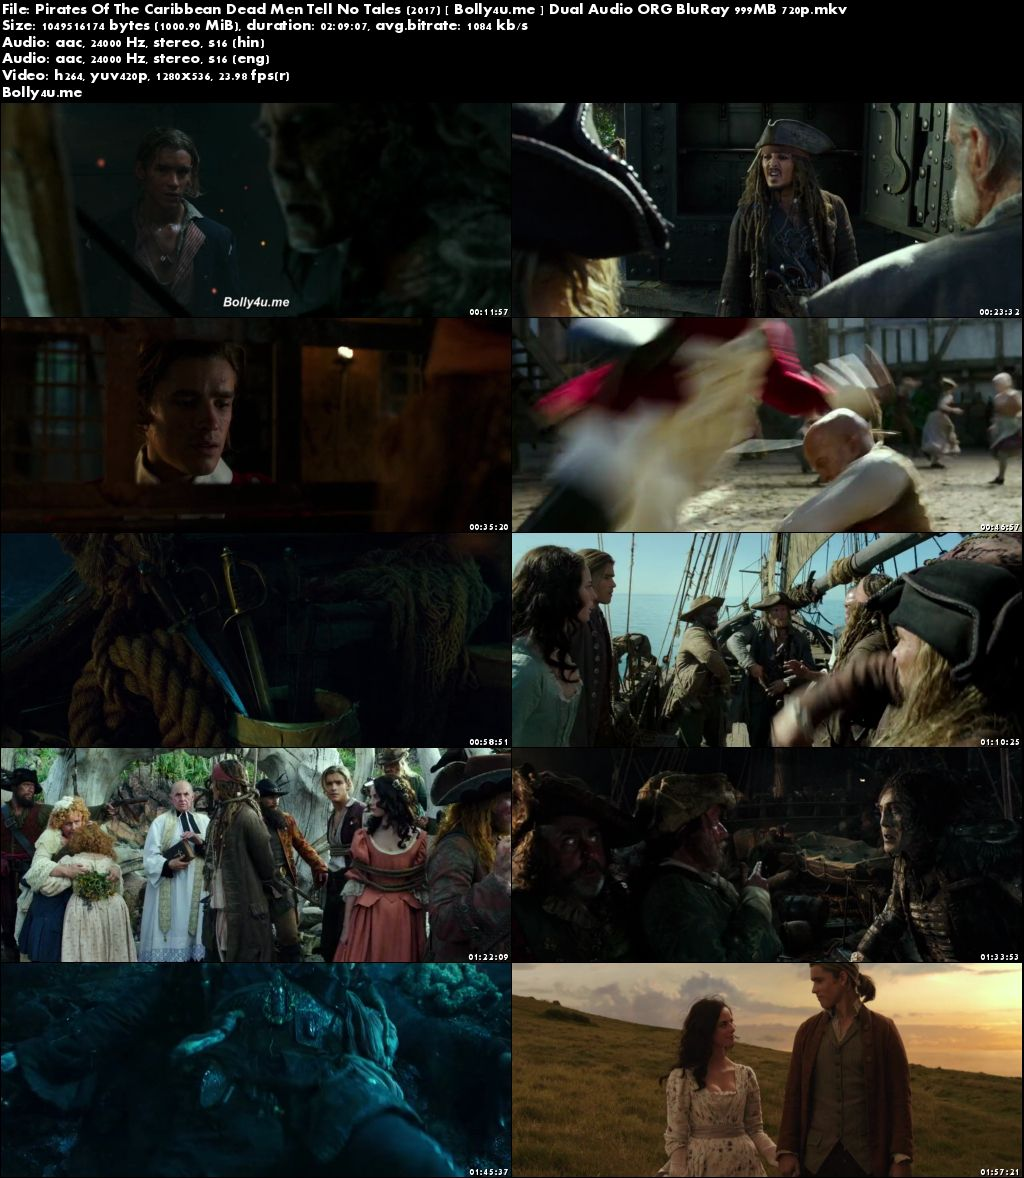 Pirates Of The Caribbean Dead Men Tell No Tales 2017 BRRip Hindi Dual Audio ORG 720p Download